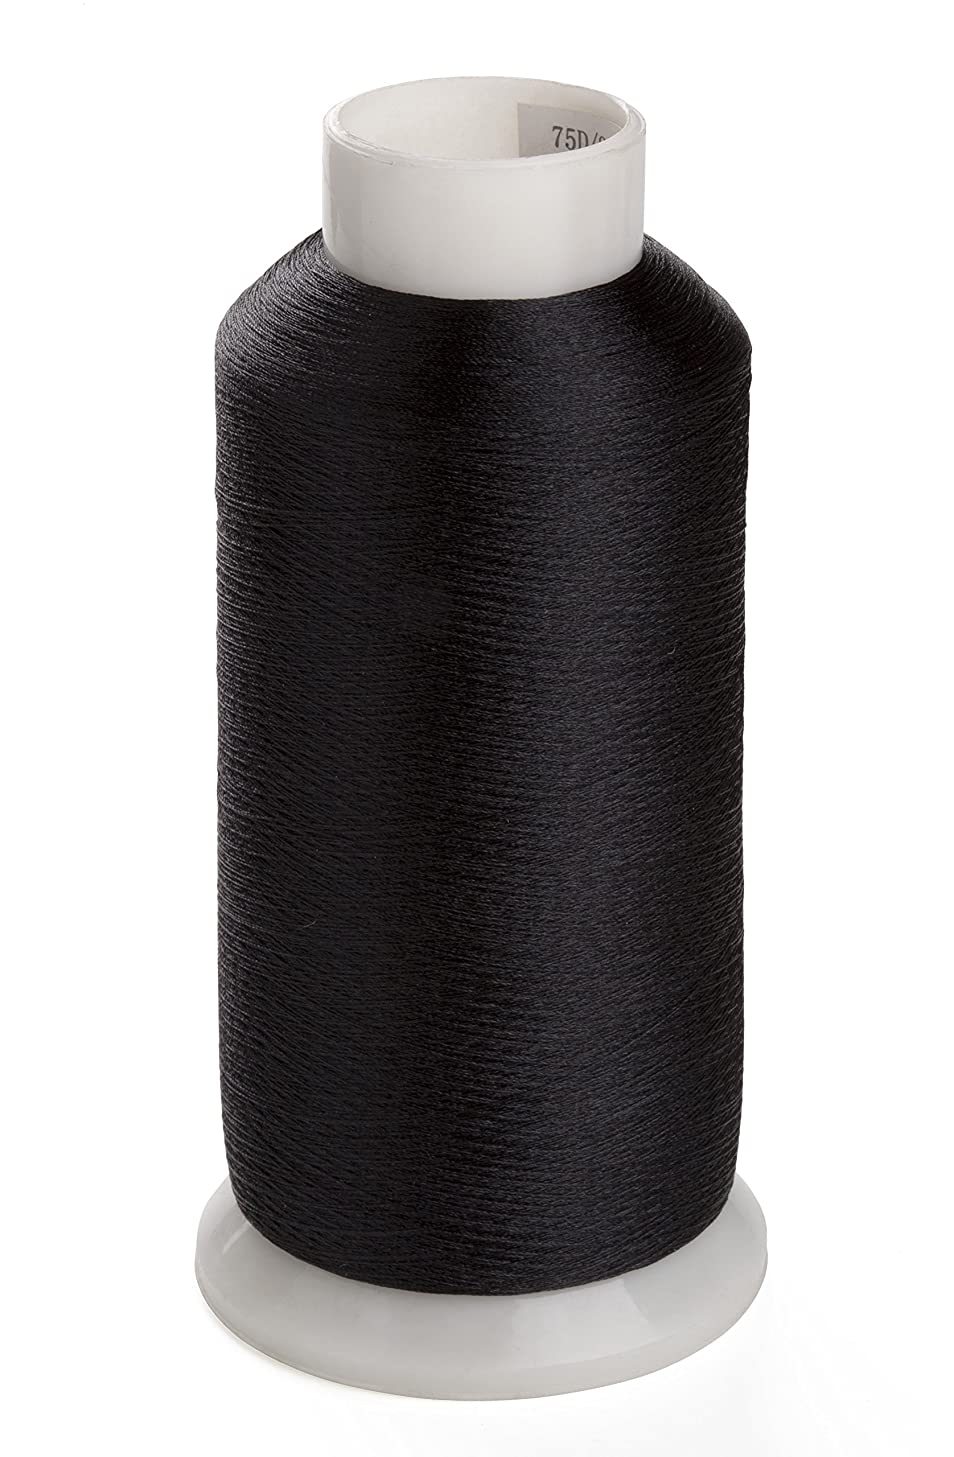 Sinbel Polyester Embroidery Under Thread Black Color Bottom Thread 5000 Meters Per Spool For Brother Babylock Janome Singer Pfaff Husqvaran Bernina Machines (black)